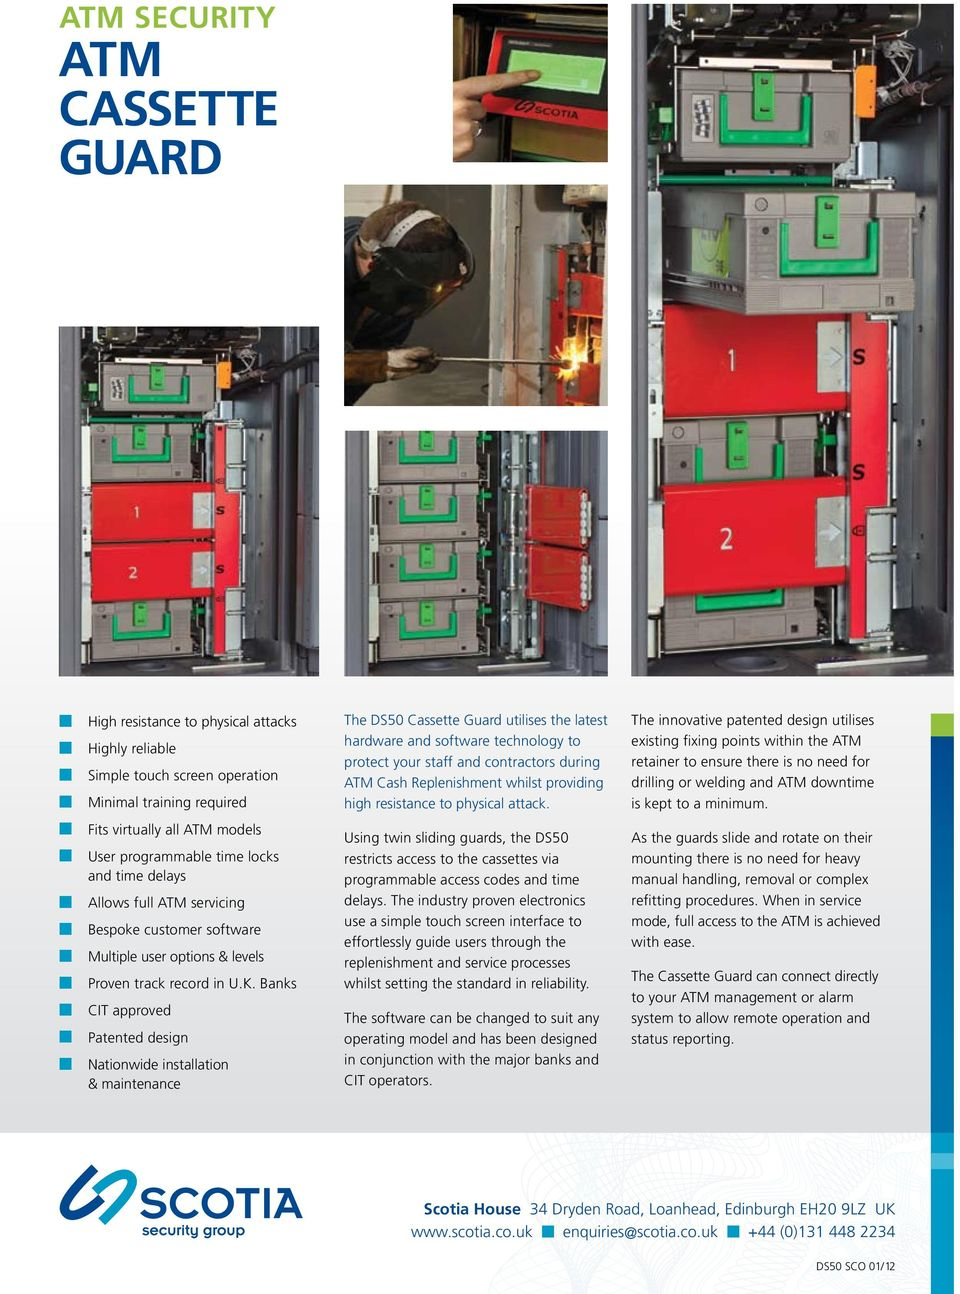 Banks n CIT approved n Patented design n Nationwide installation & maintenance The DS50 Cassette Guard utilises the latest hardware and software technology to protect your staff and contractors